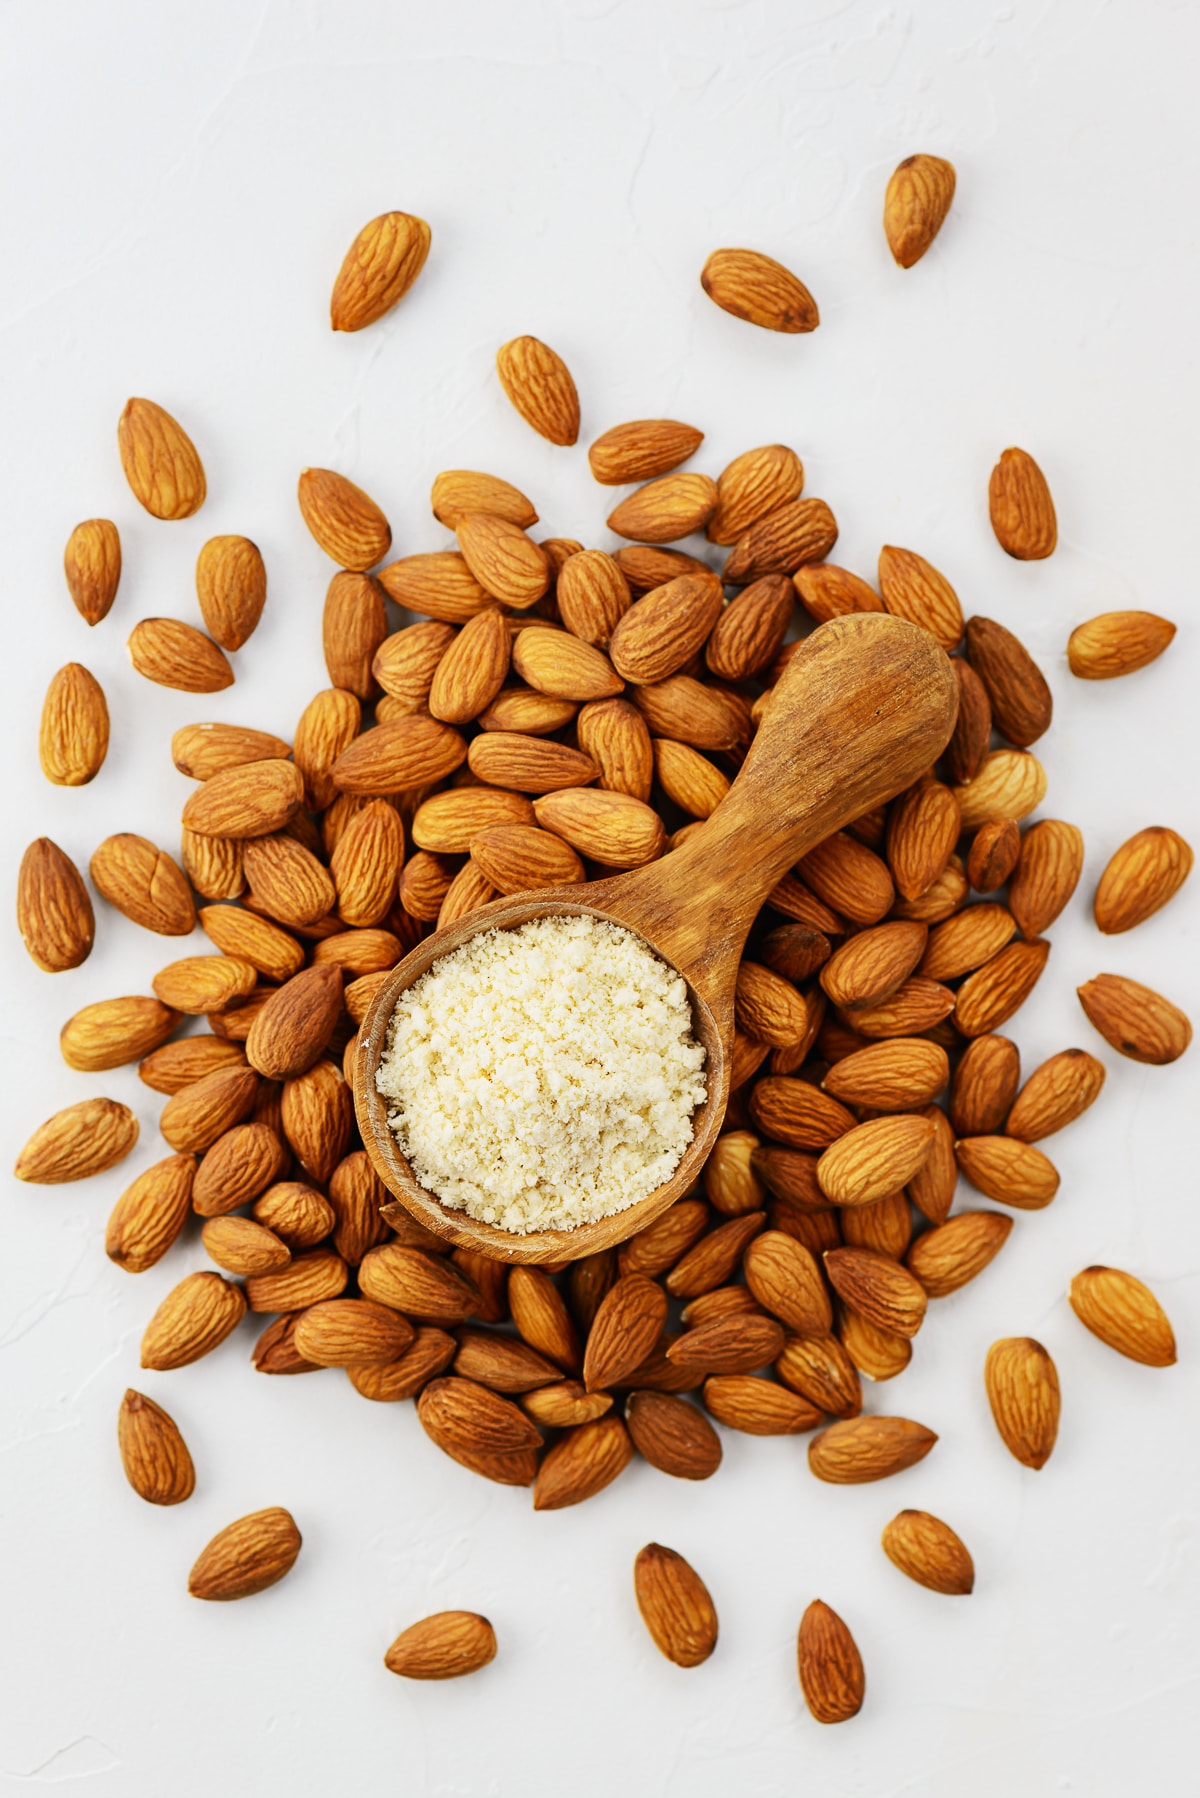 A pile of whole almonds with a wooden spoon filled with almond flour